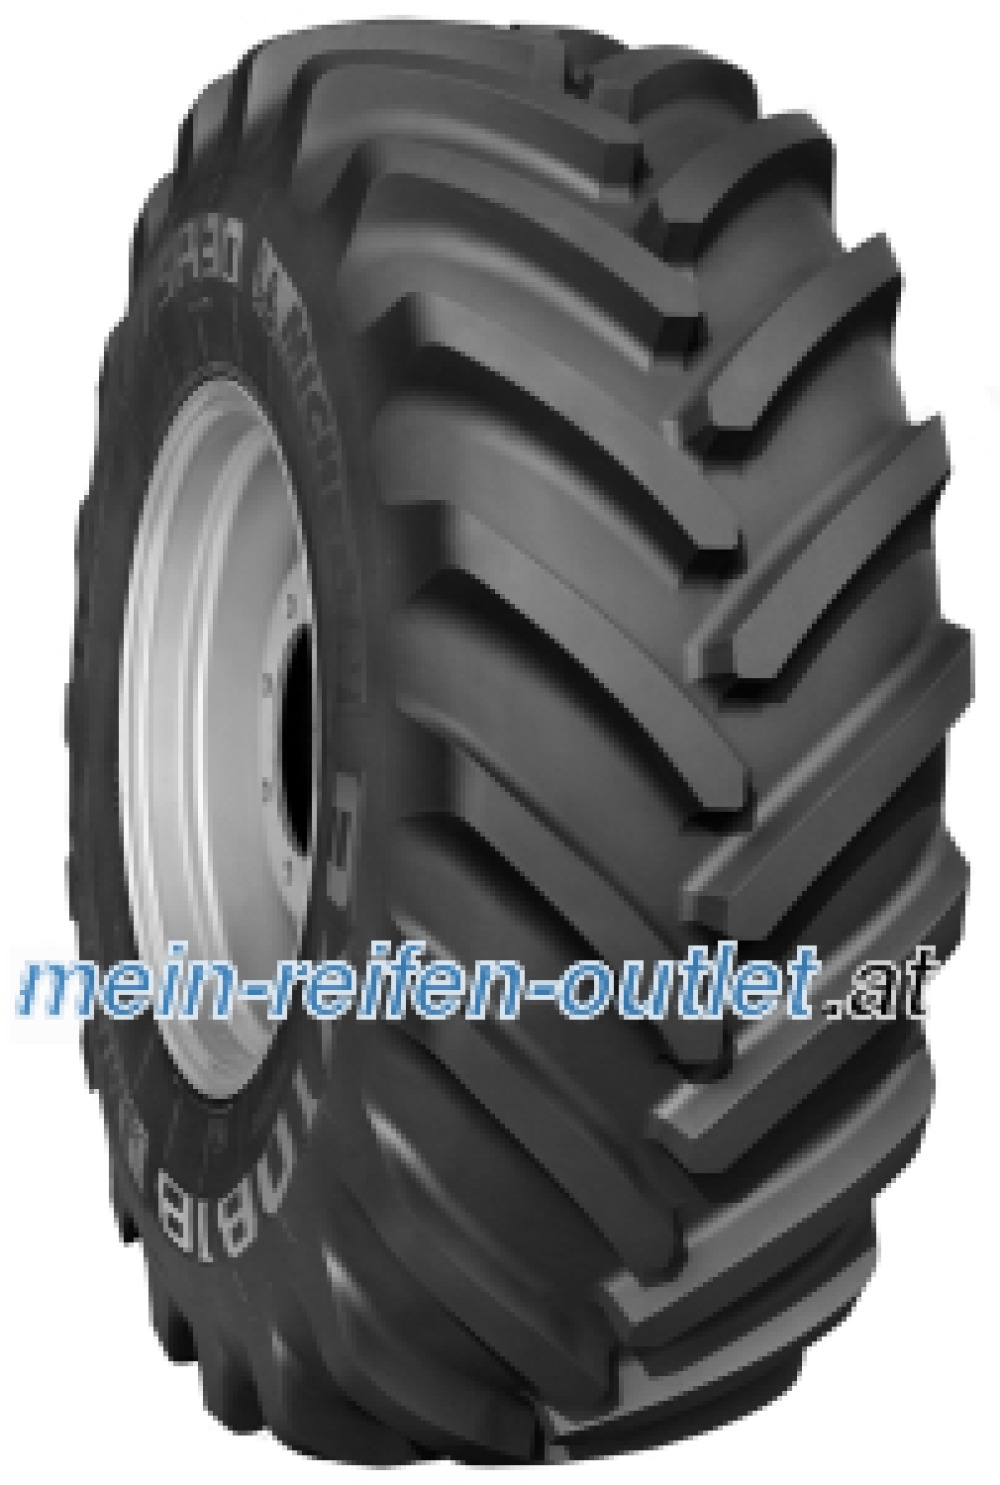 Michelin Axiobib ( IF800/70 R38 179D TL )